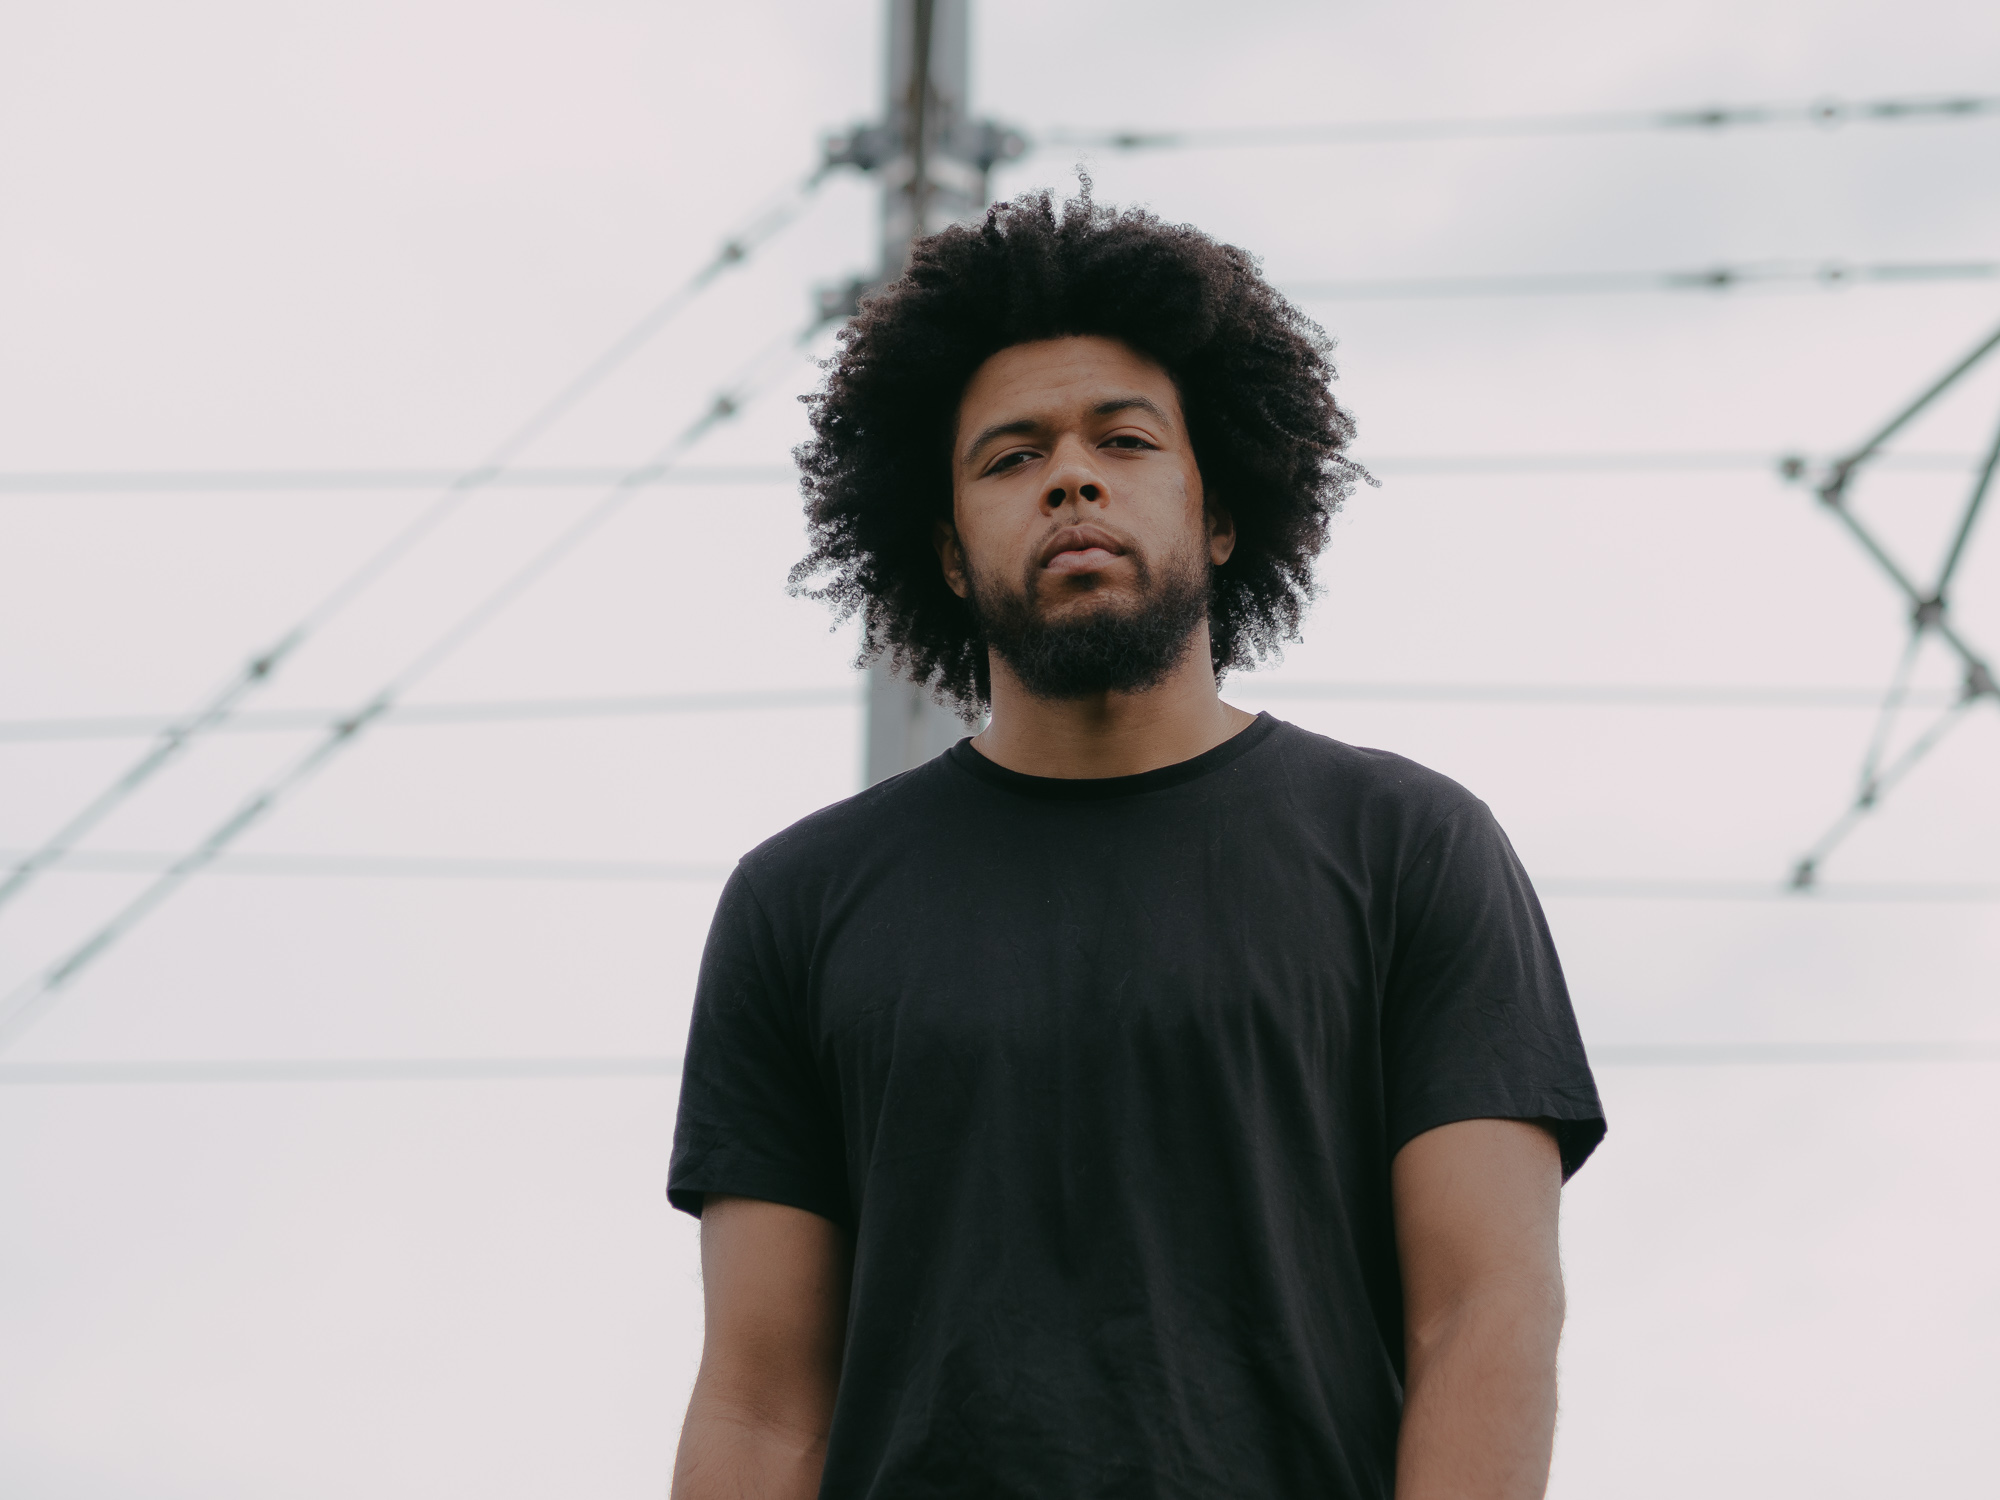 Rapper Anthony Lucius may hail from the Metro East, but he's not letting that stop him from making it in St. Louis and beyond. - - Kevin C. Johnson // St. Louis Post-Dispatch